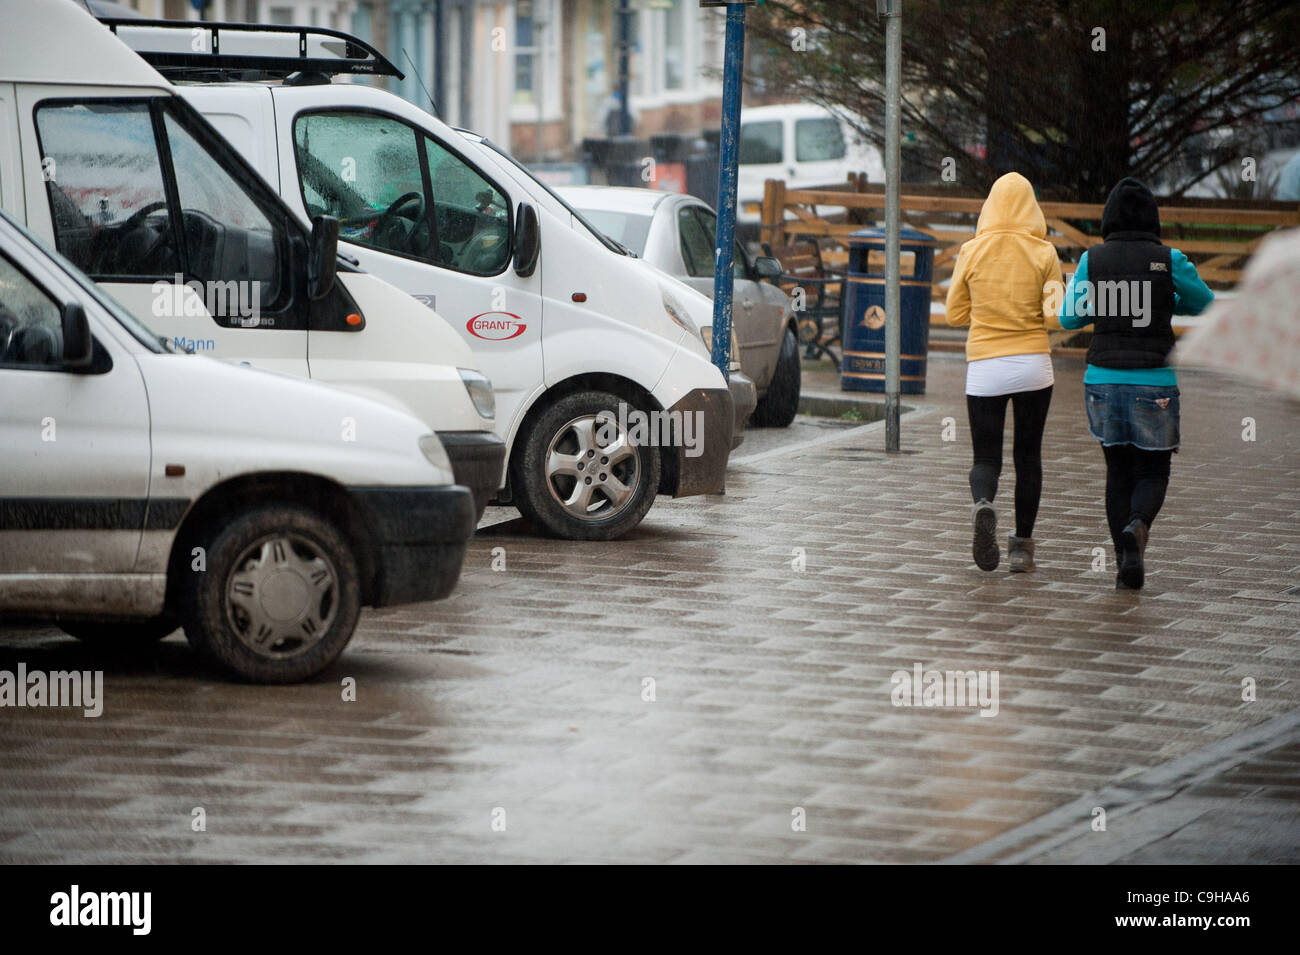 January 4 2012. Cars parked illegally on the streets of Aberystwyth Wales UK, . The town has been without traffic - Stock Image